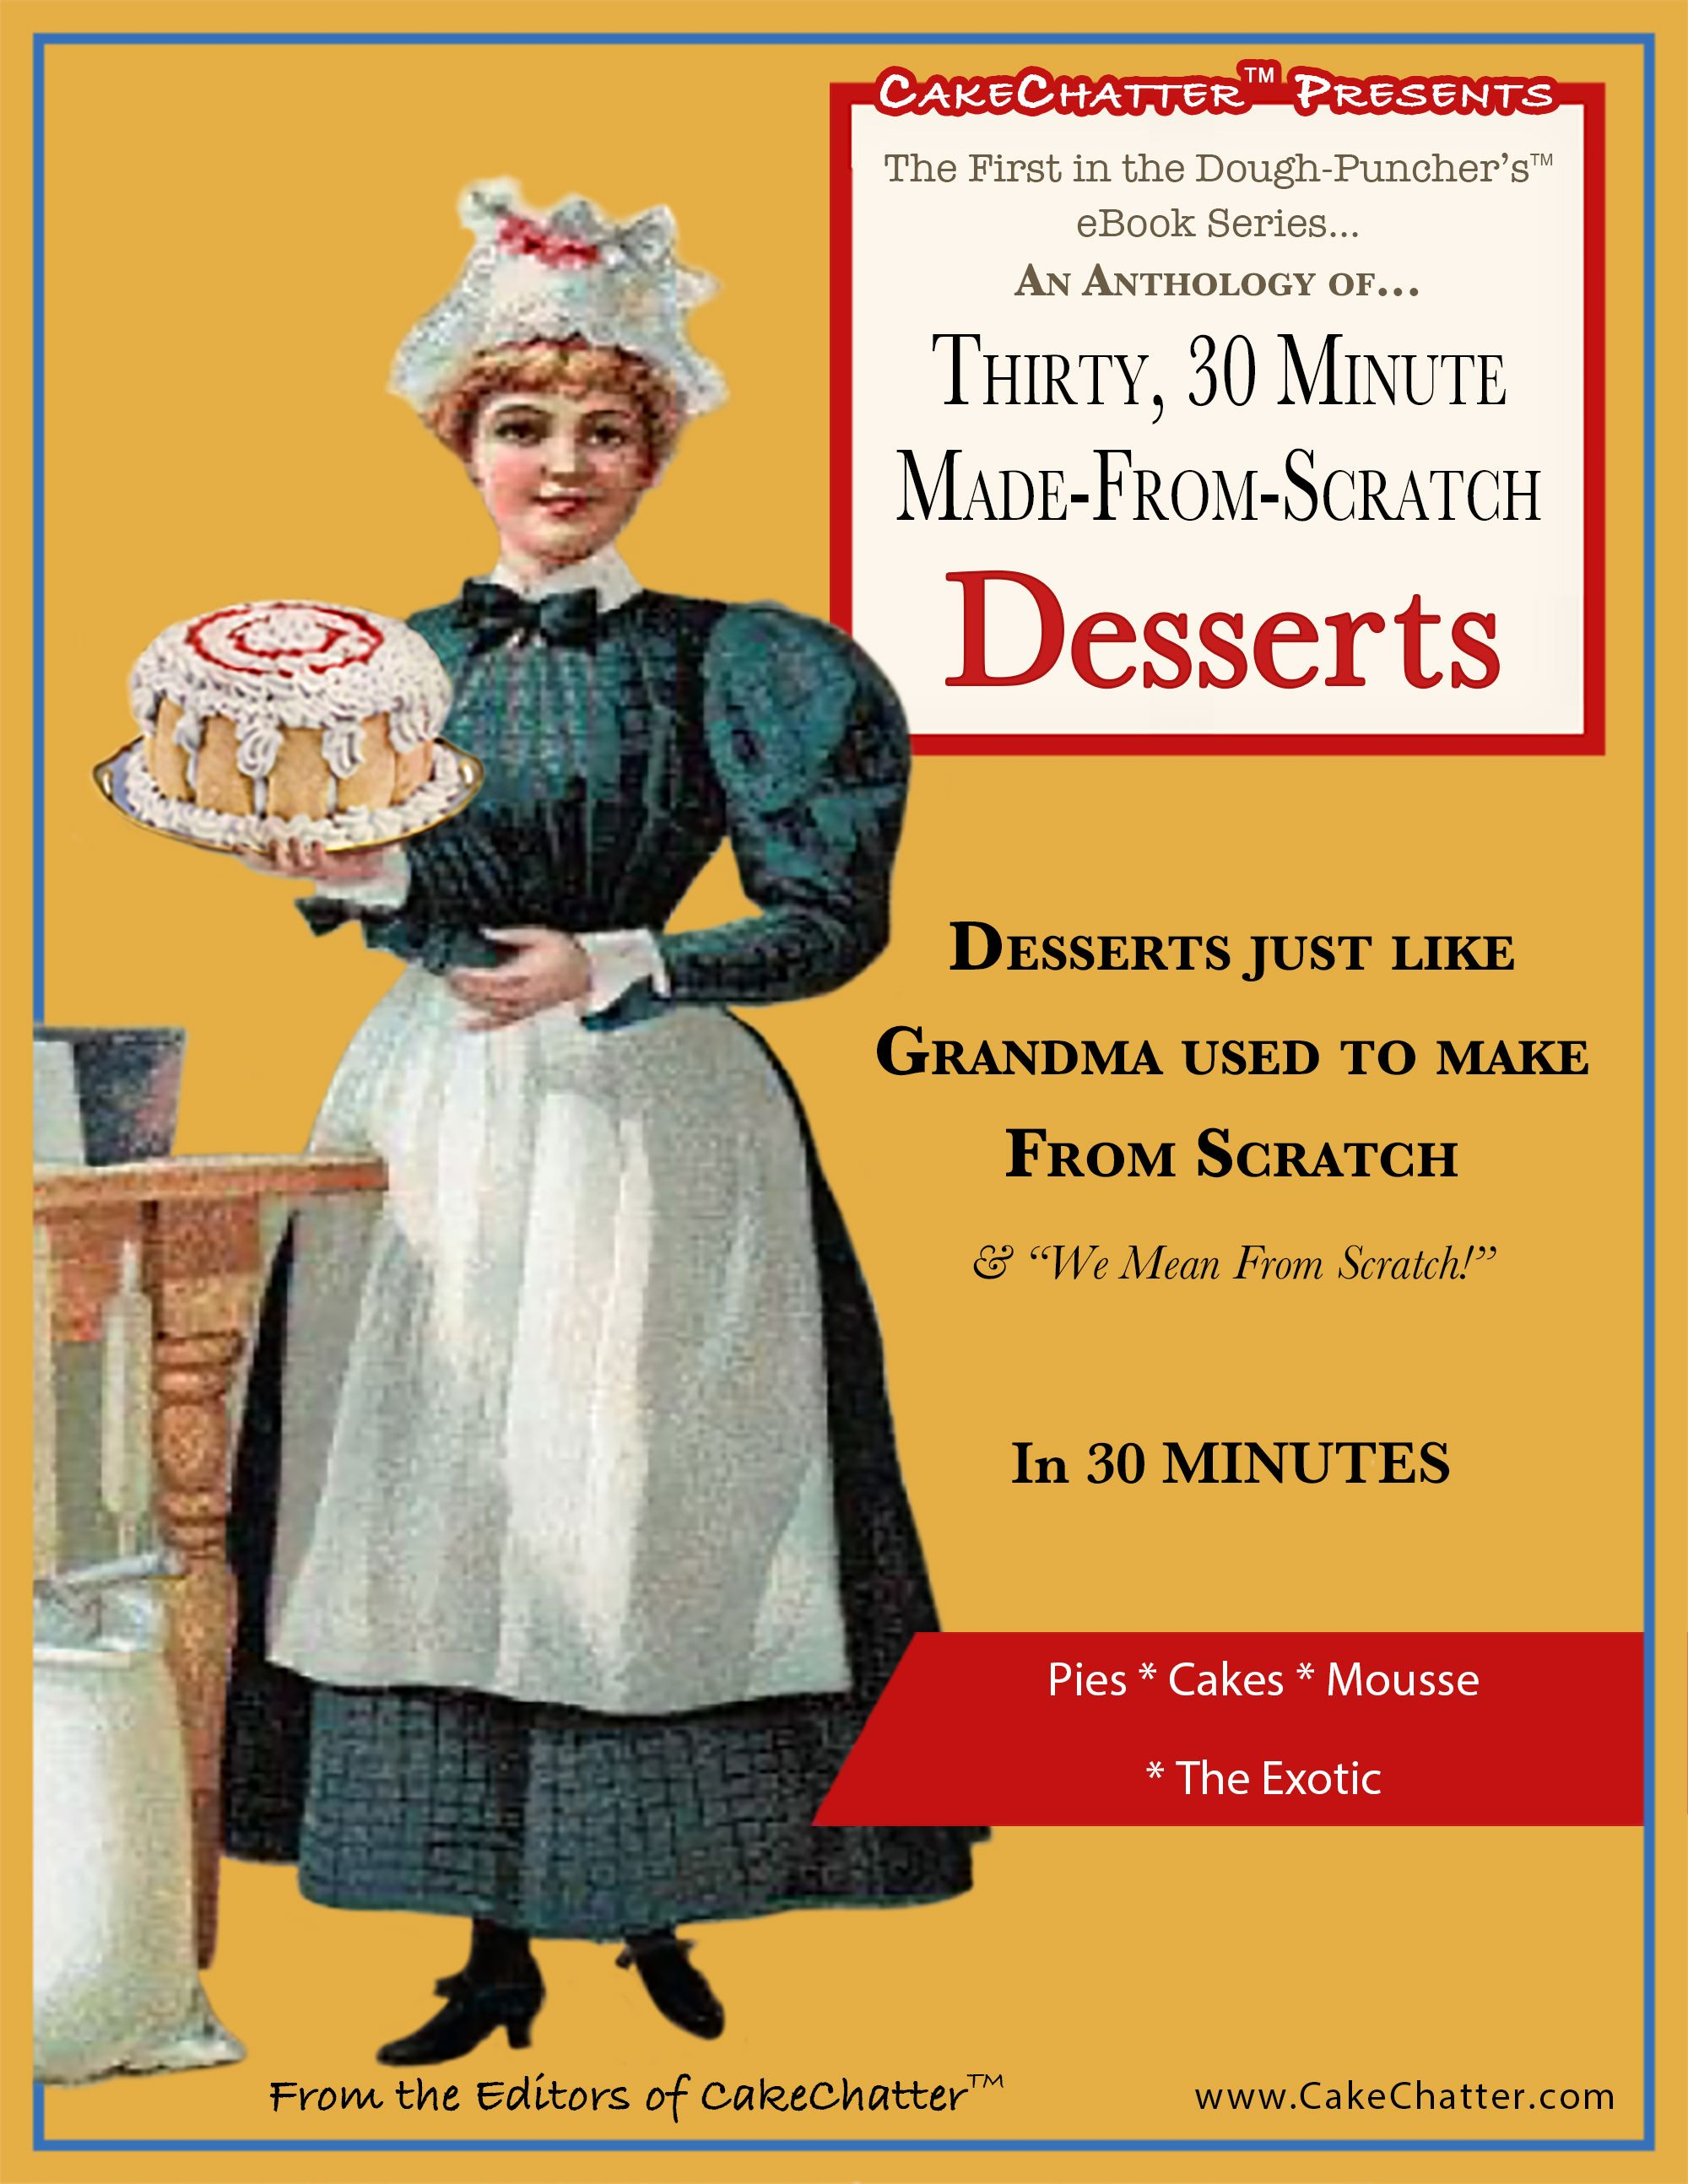 "An Anthology of Thirty, 30 Minute Made-From-Scratch Desserts...: Desserts just like Grandma used to make From Scratch & ""We Mean From Scratch!"" In 30 Minutes (The Dough-Puncher's eBook Series 1)"